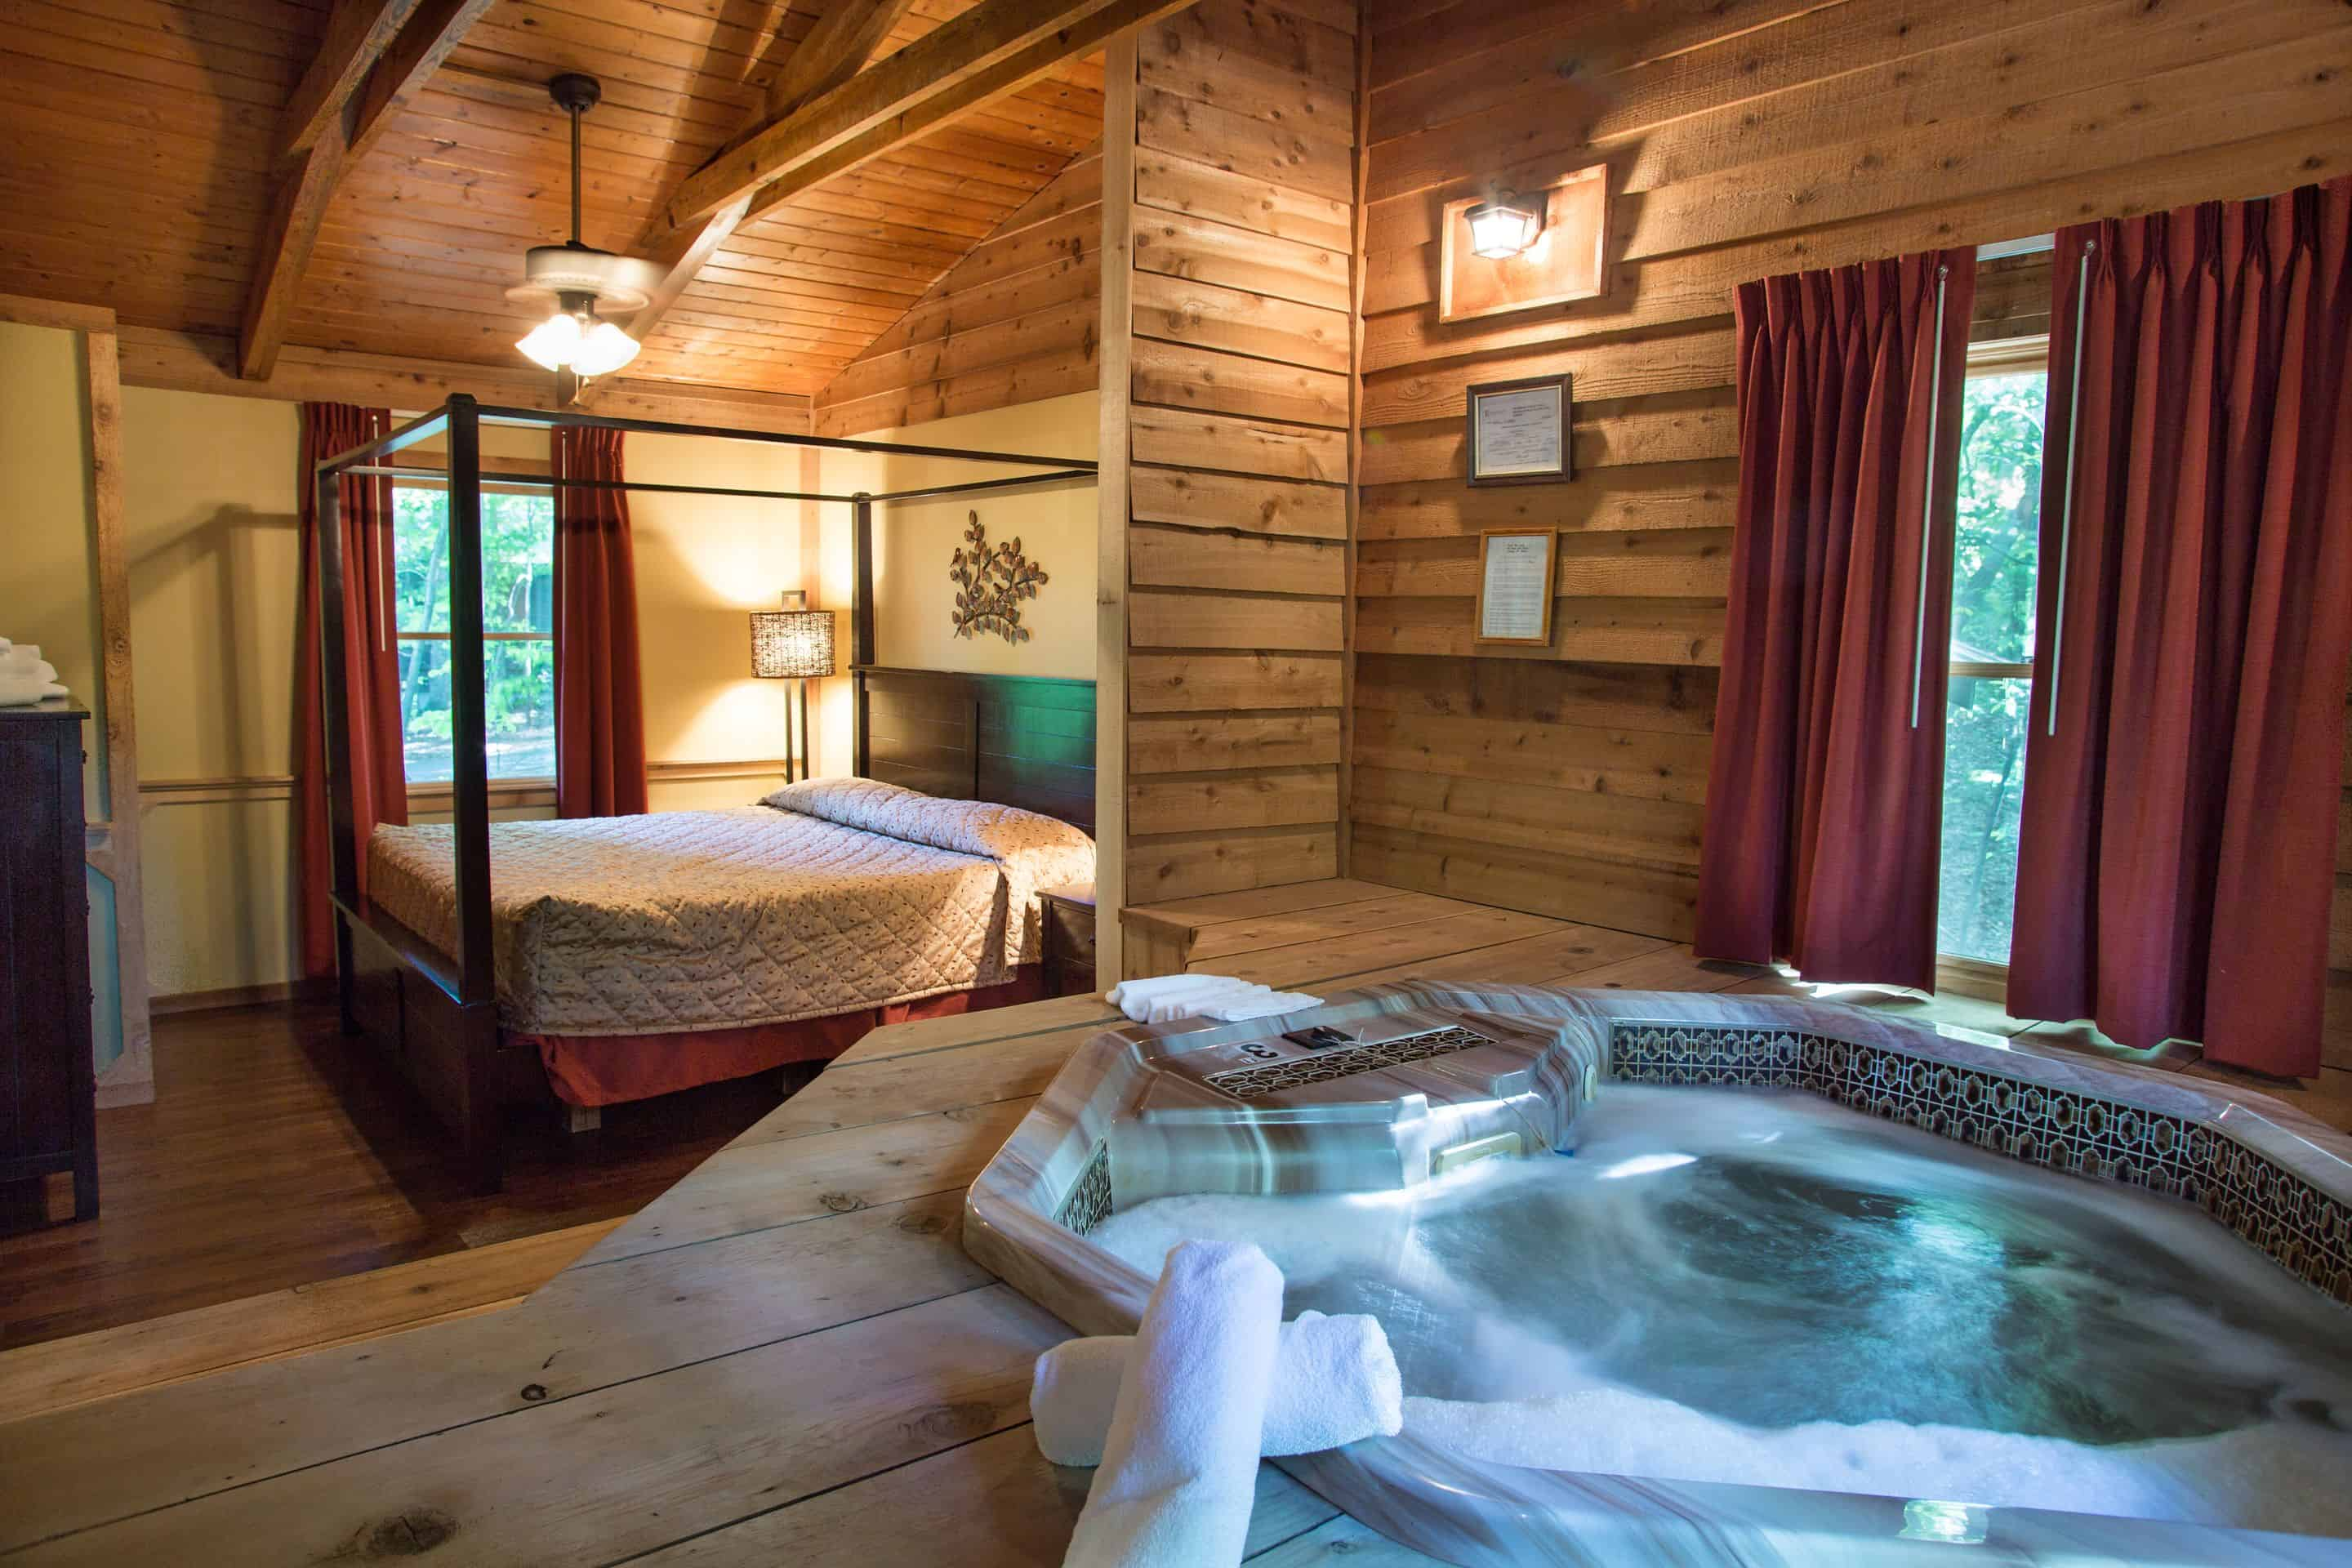 Romantic Honeymoon Cabins In Georgia Mountains At Forrest Hills Resort